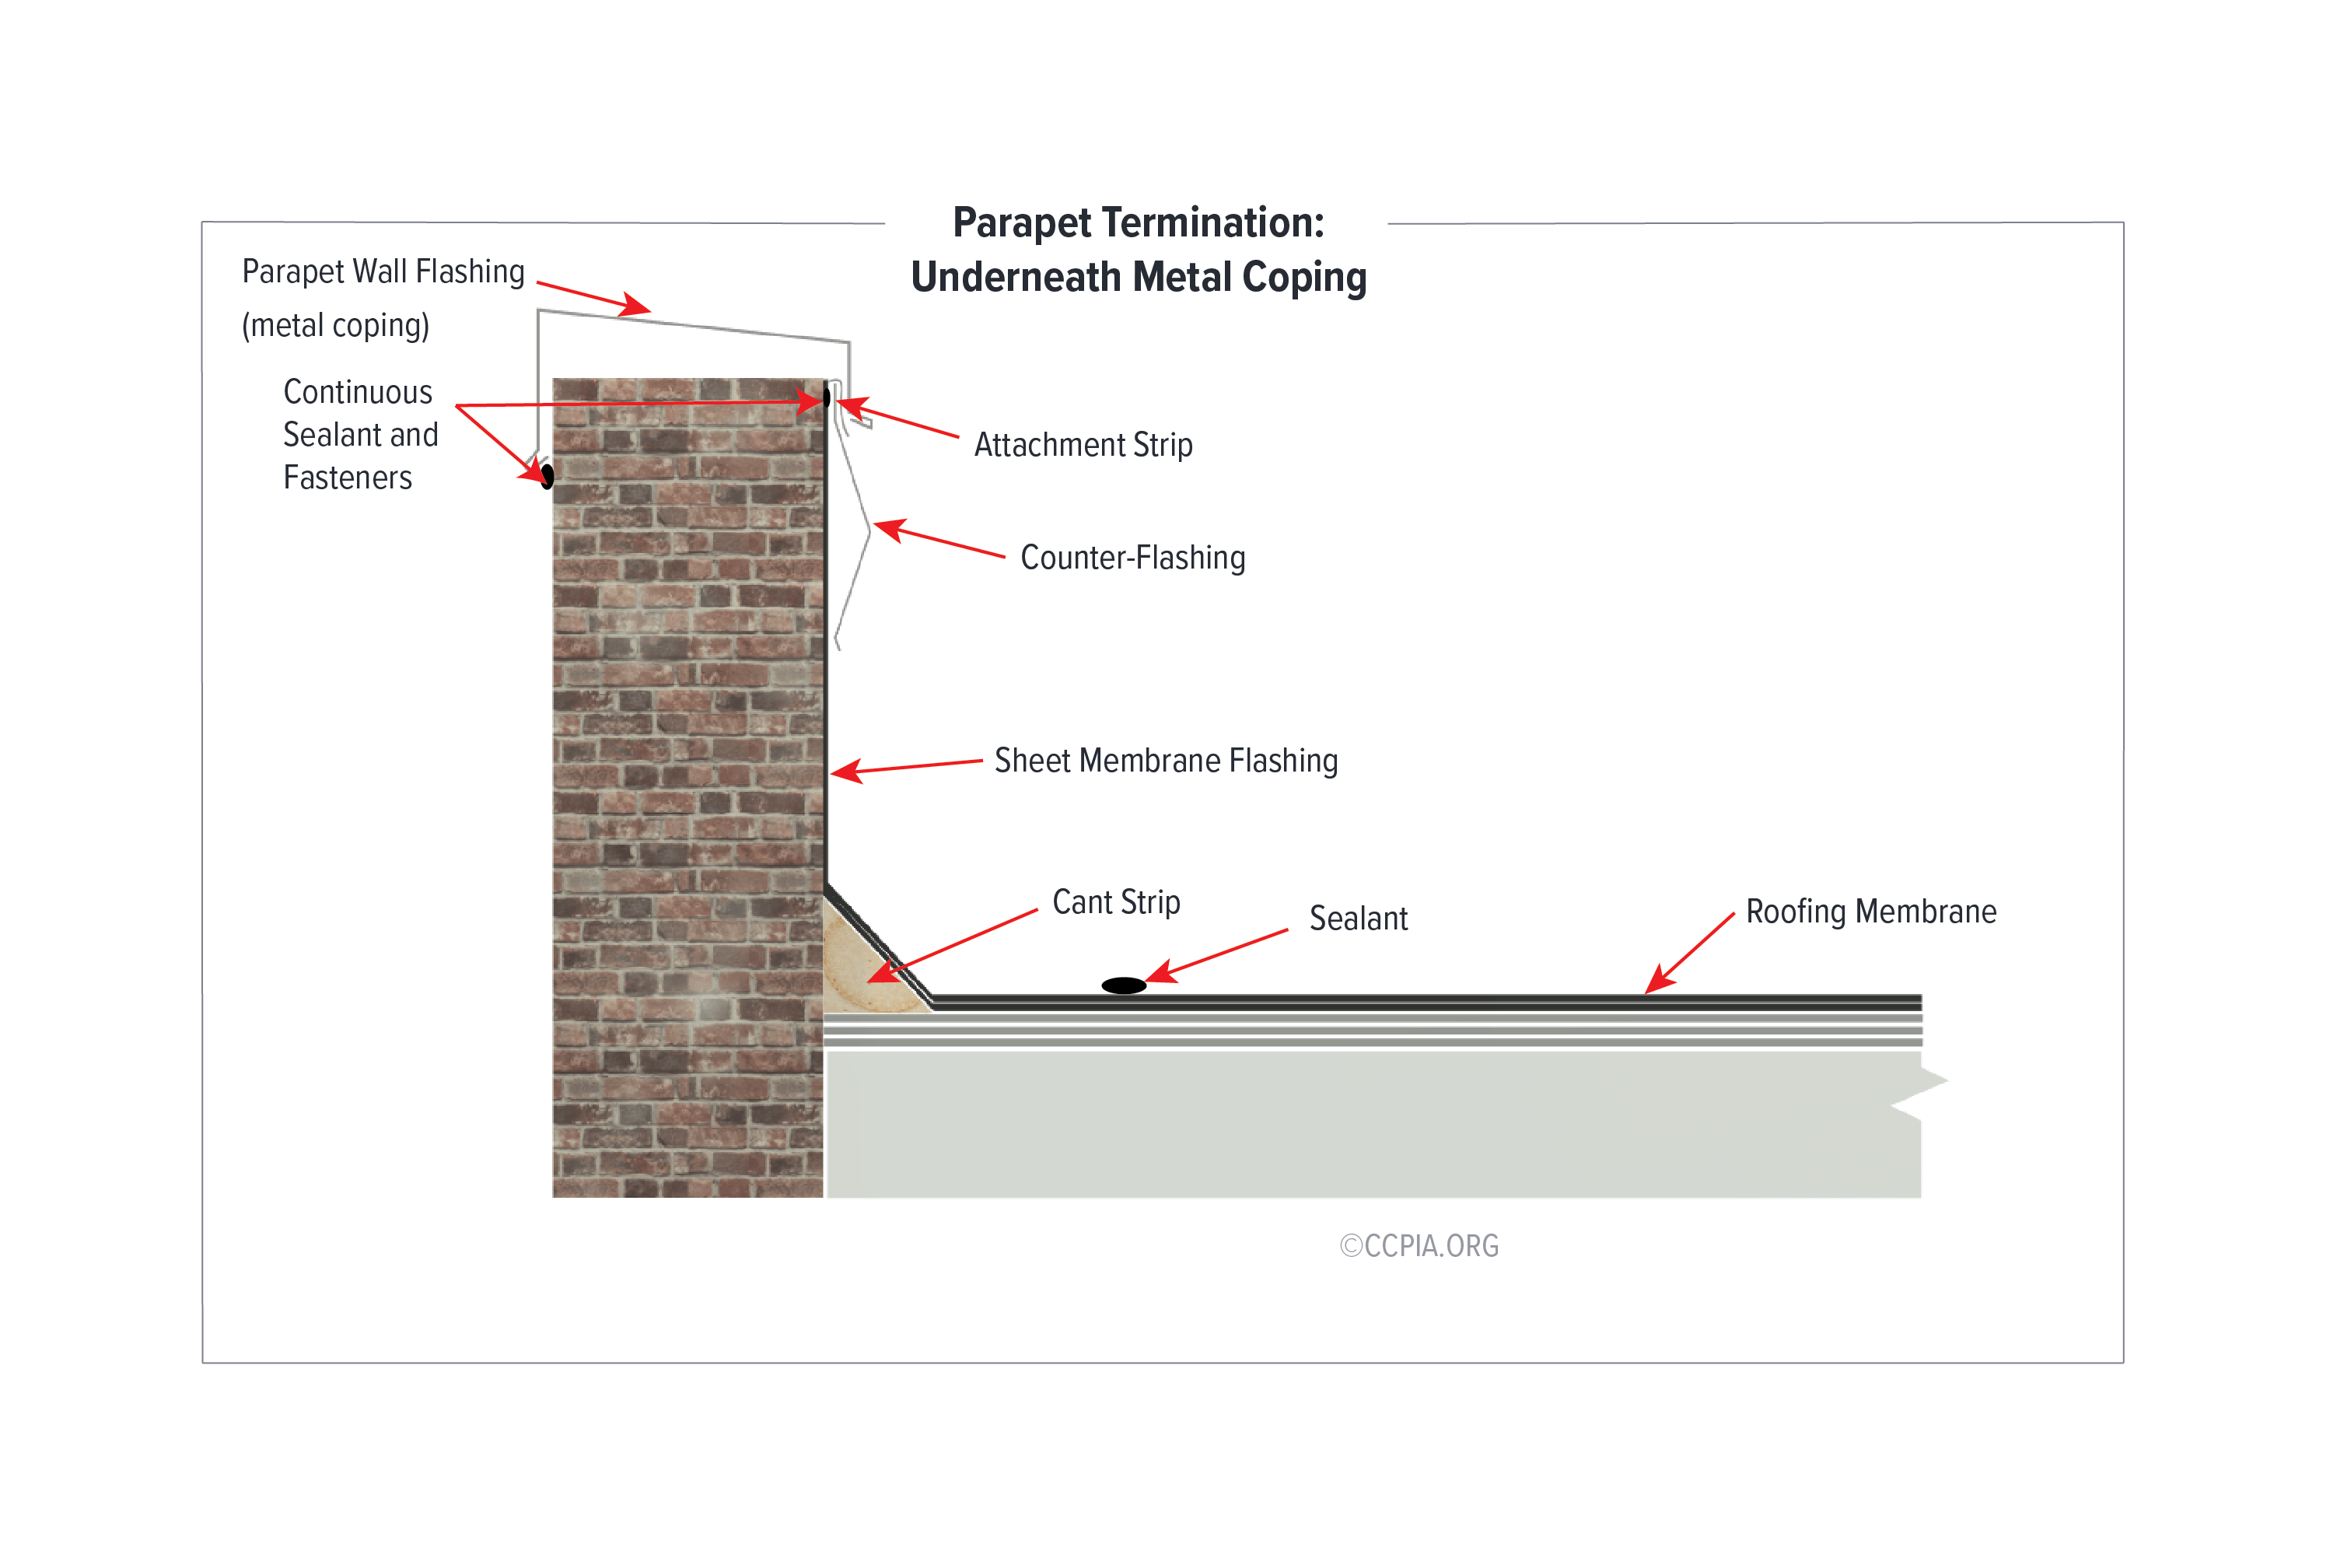 Low-Slope Roofing. Parapet Termination: Underneath Metal Coping.